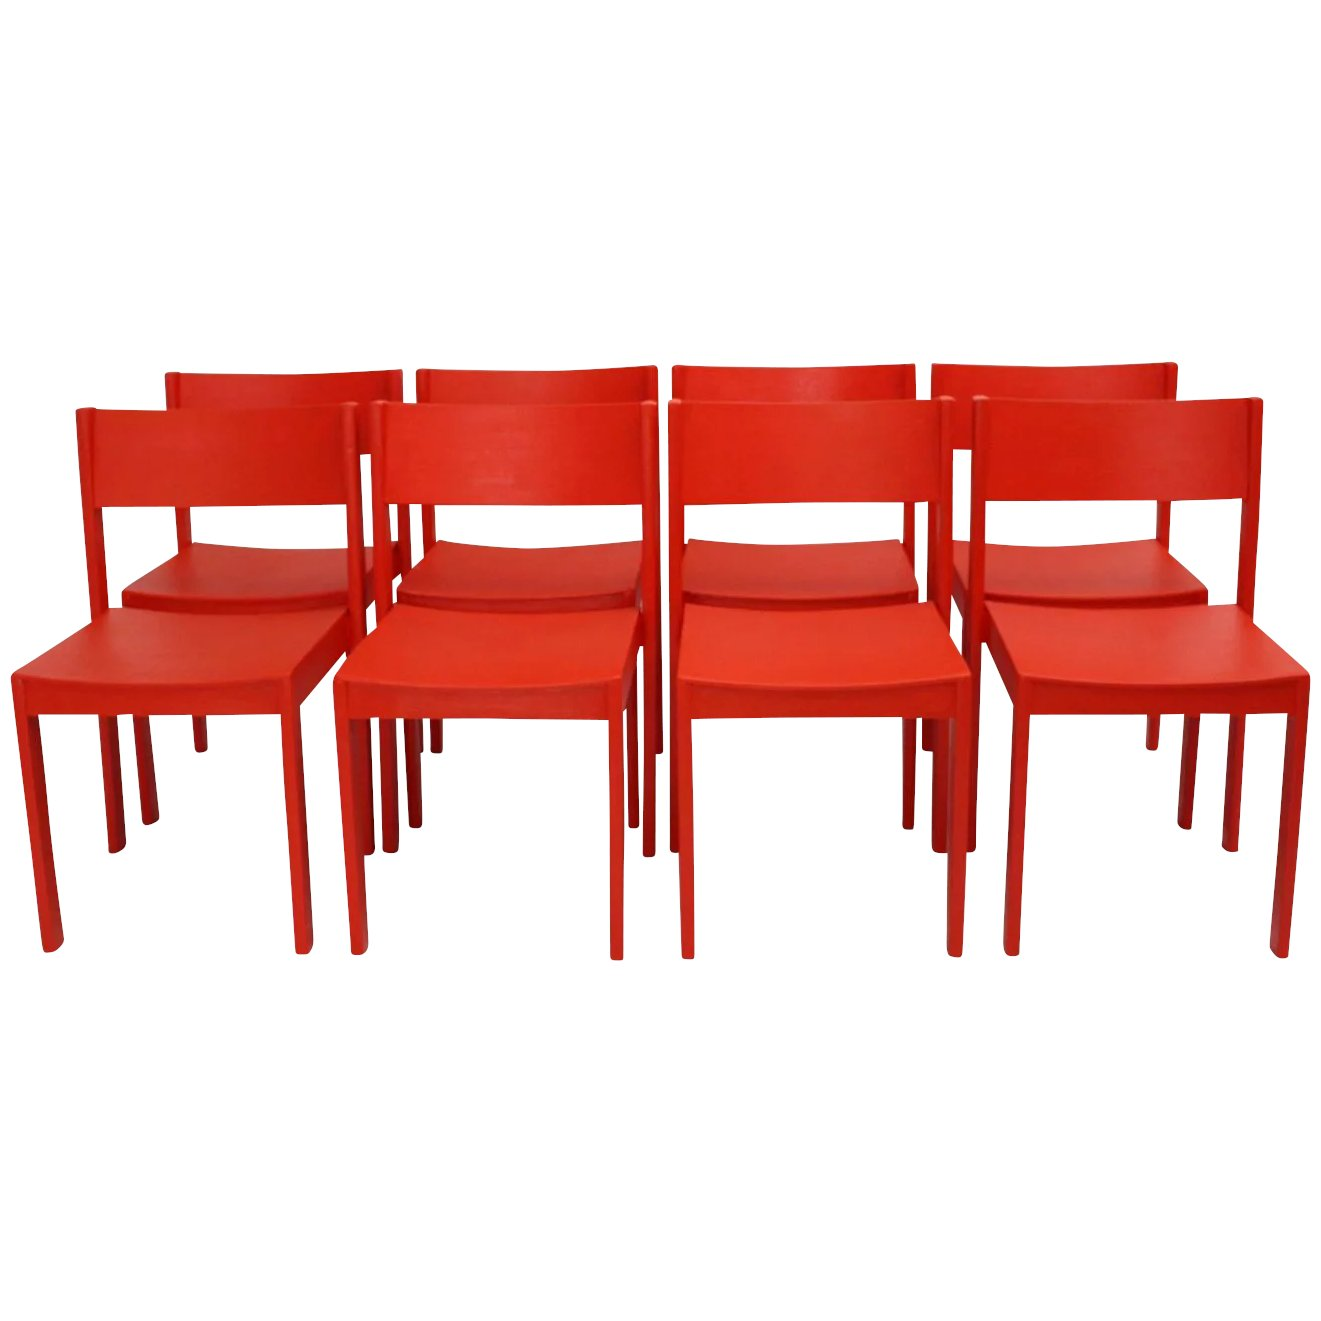 Mid Century Modern Red Dining Room Chairs by Carl Auböck 1956 Vienna Set of  8